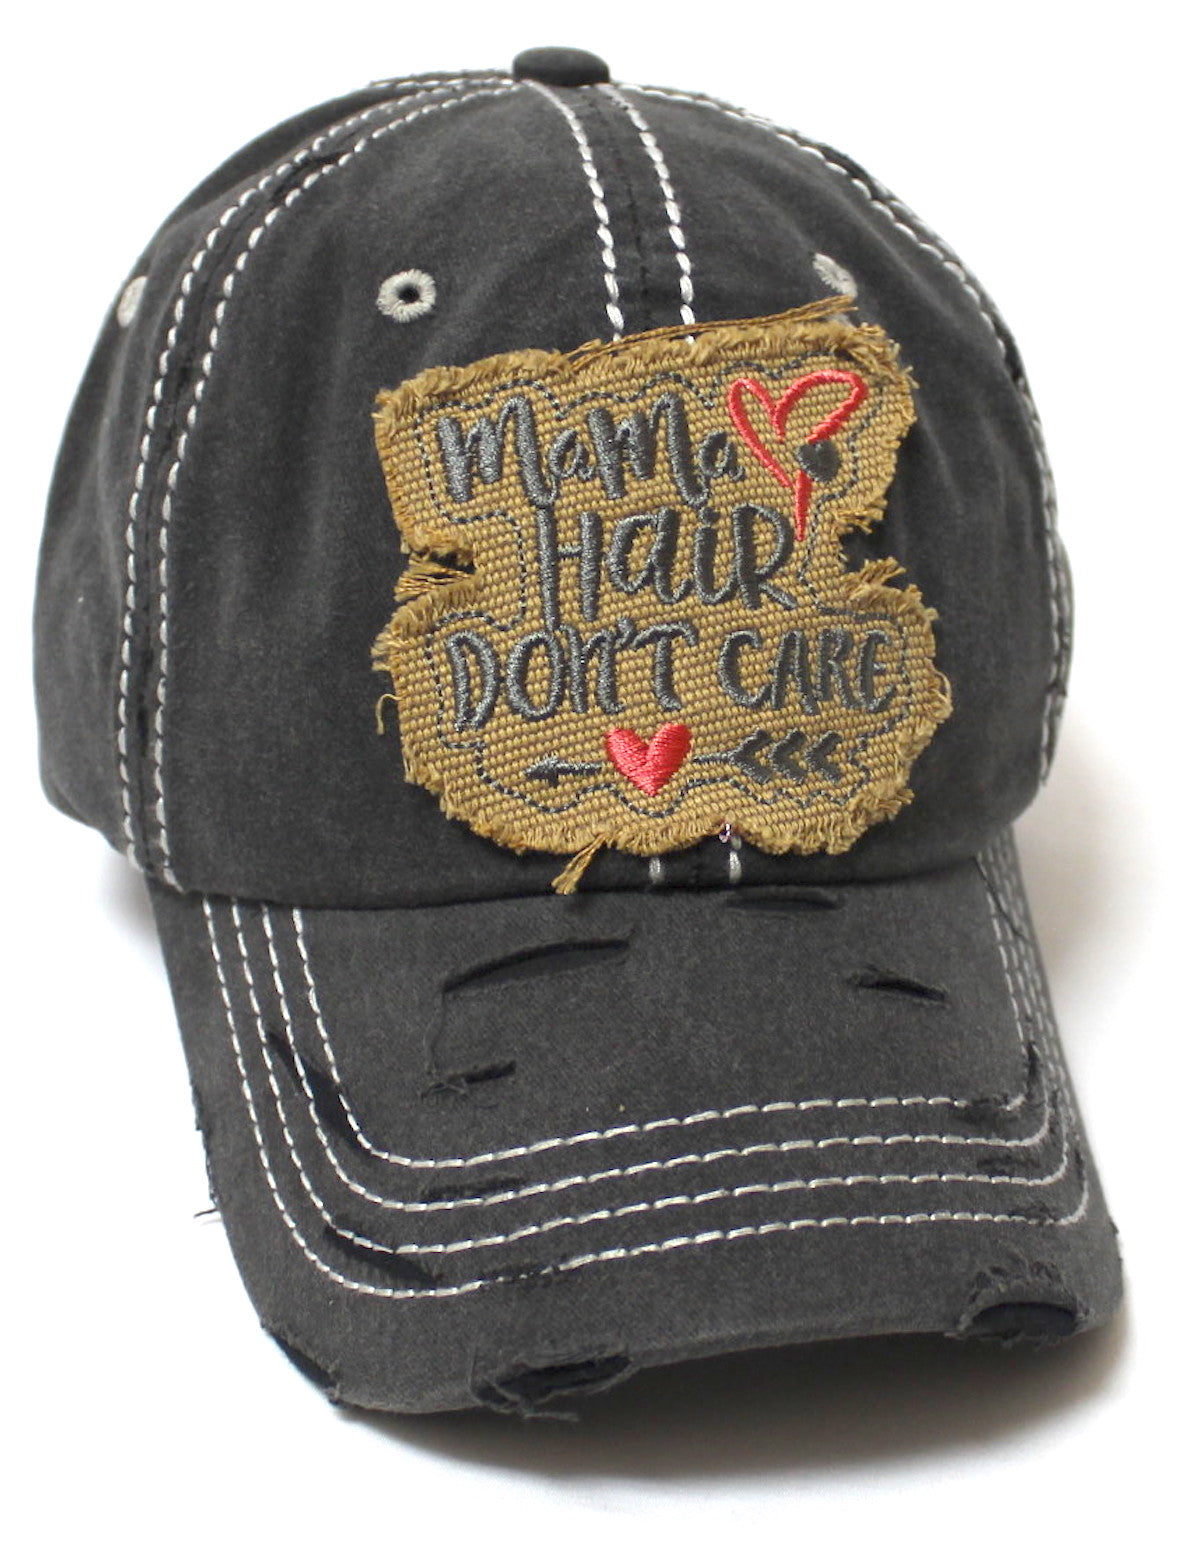 Mama Hair Don't Care Hearts & Arrow Monogram Patch Embroidery Adjustable Hat, Vintage Black - Caps 'N Vintage